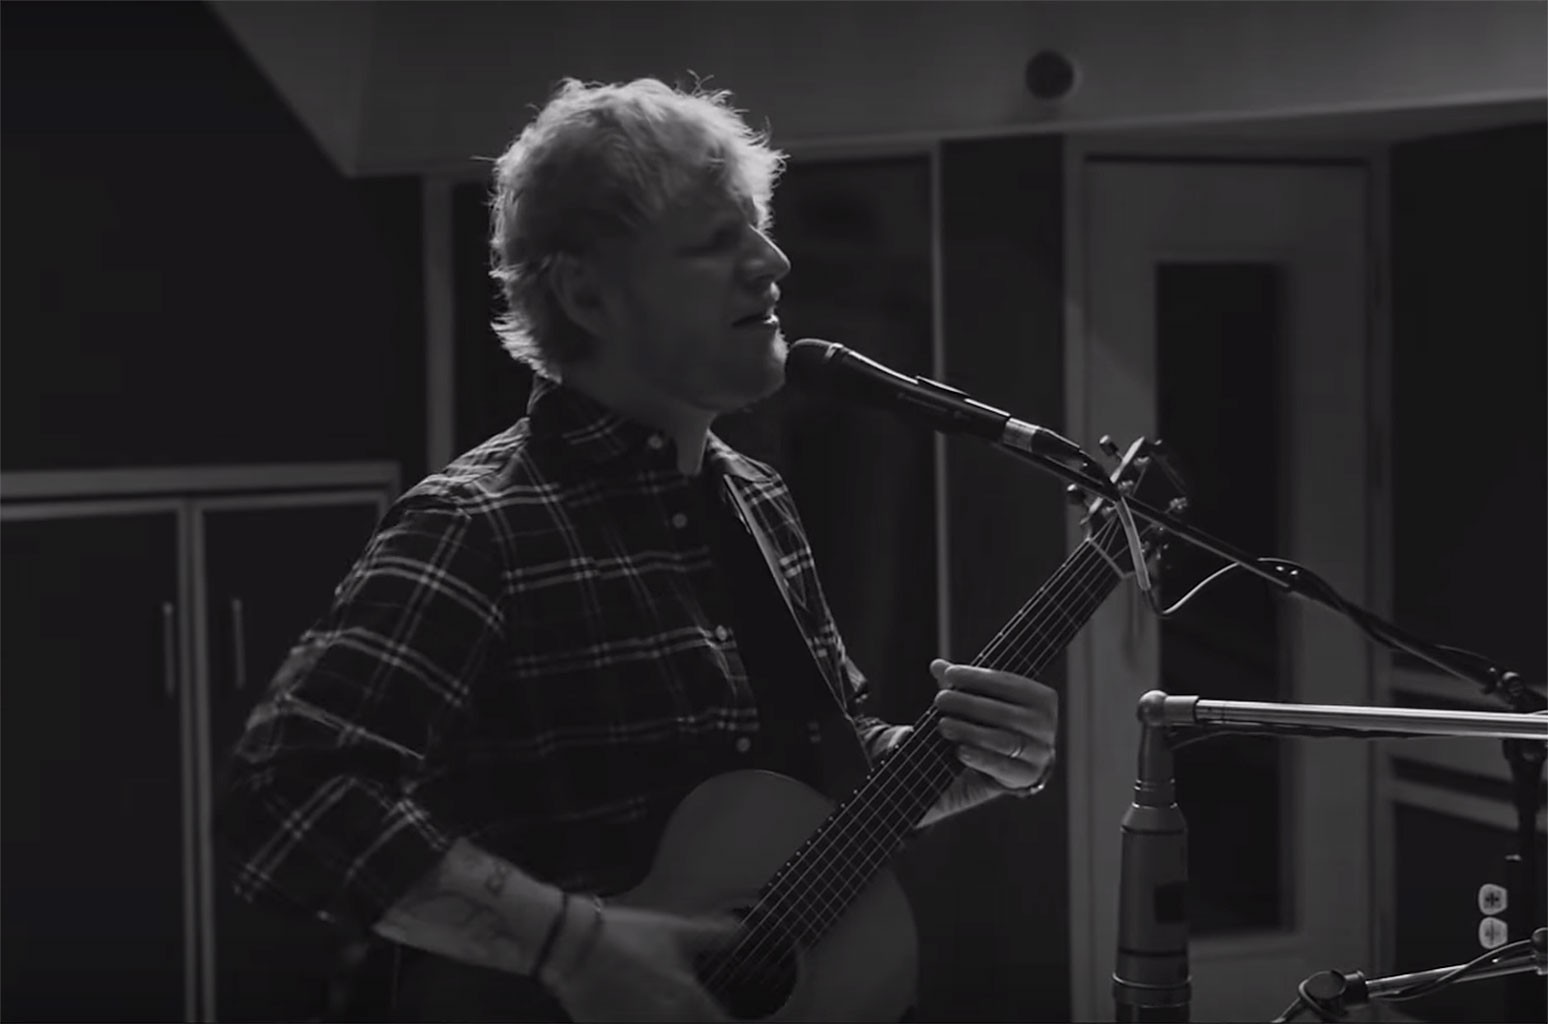 Ed Sheeran S I Don T Care Performance At Abbey Road Studios Watch Billboard Billboard